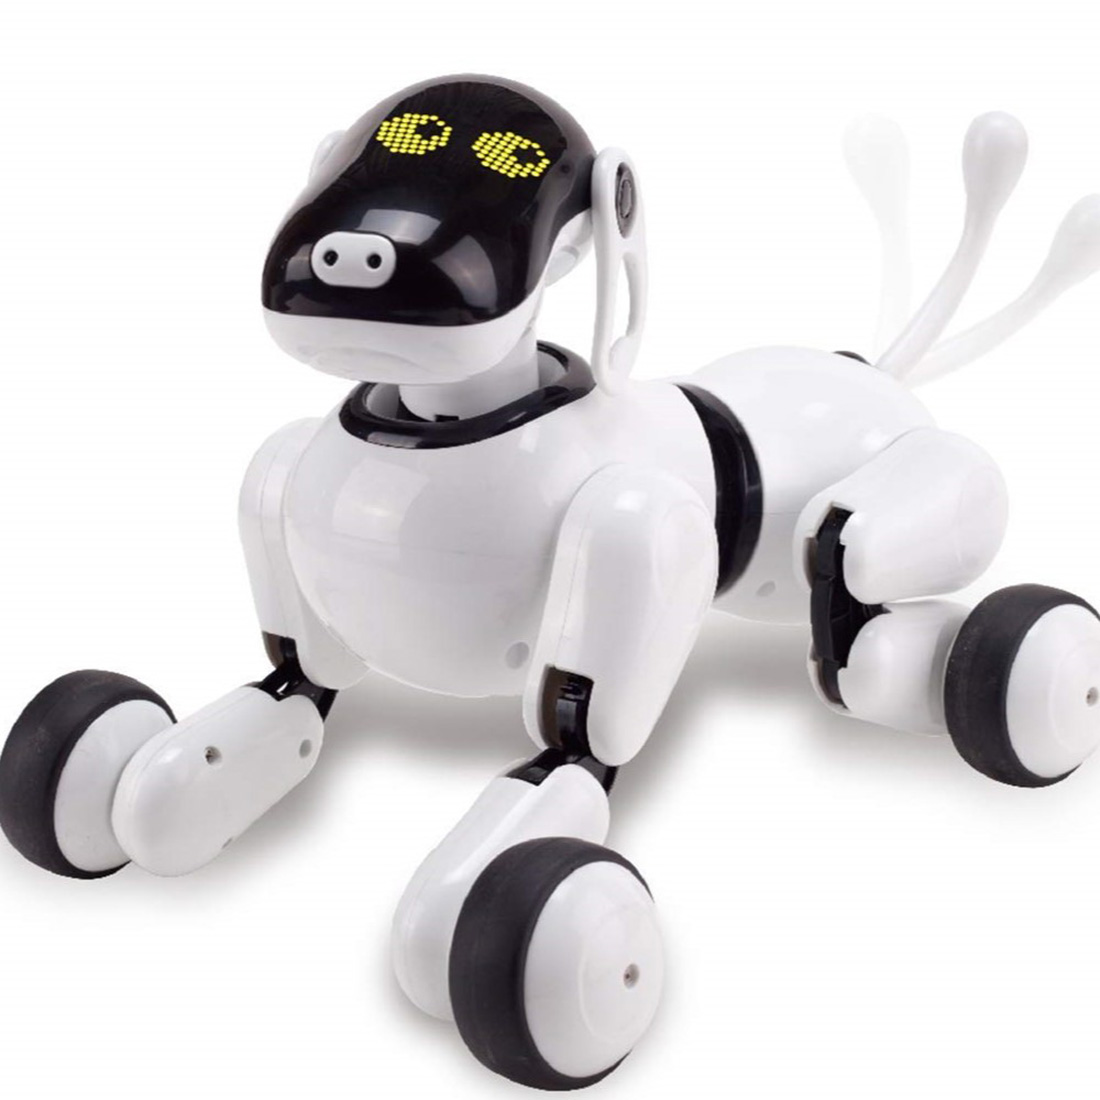 Children Pet Robot Dog Toy with Dancing Singing Speech Recognition Control Touch Sensitive APP Custom Programming